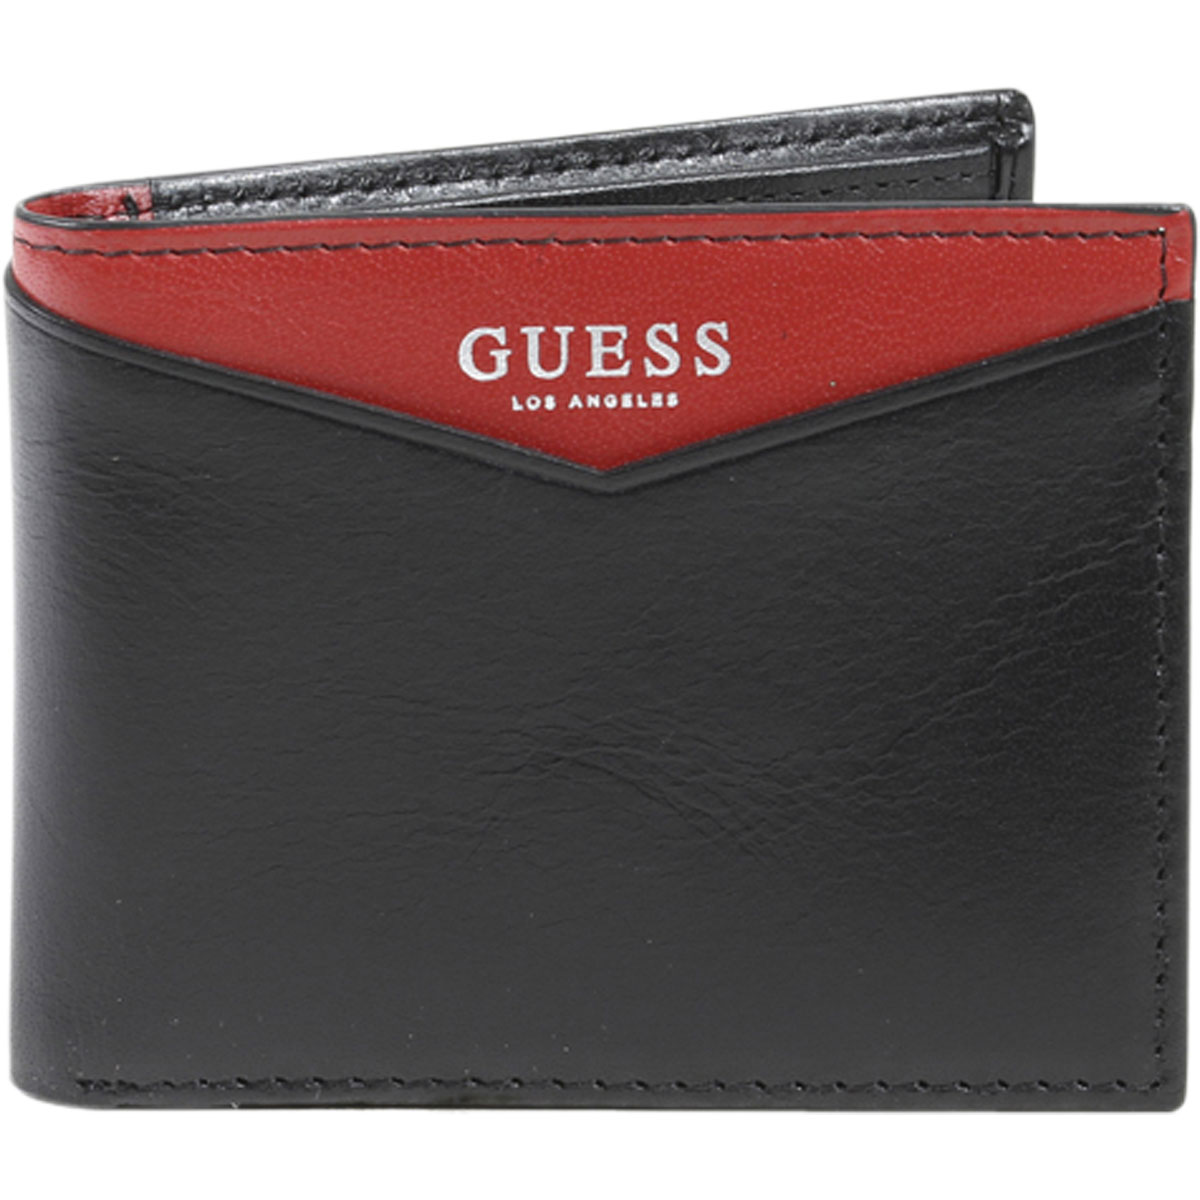 25768cd7ac1d Guess Men s Huntington RFID Blocking Genuine Black Red Leather ...